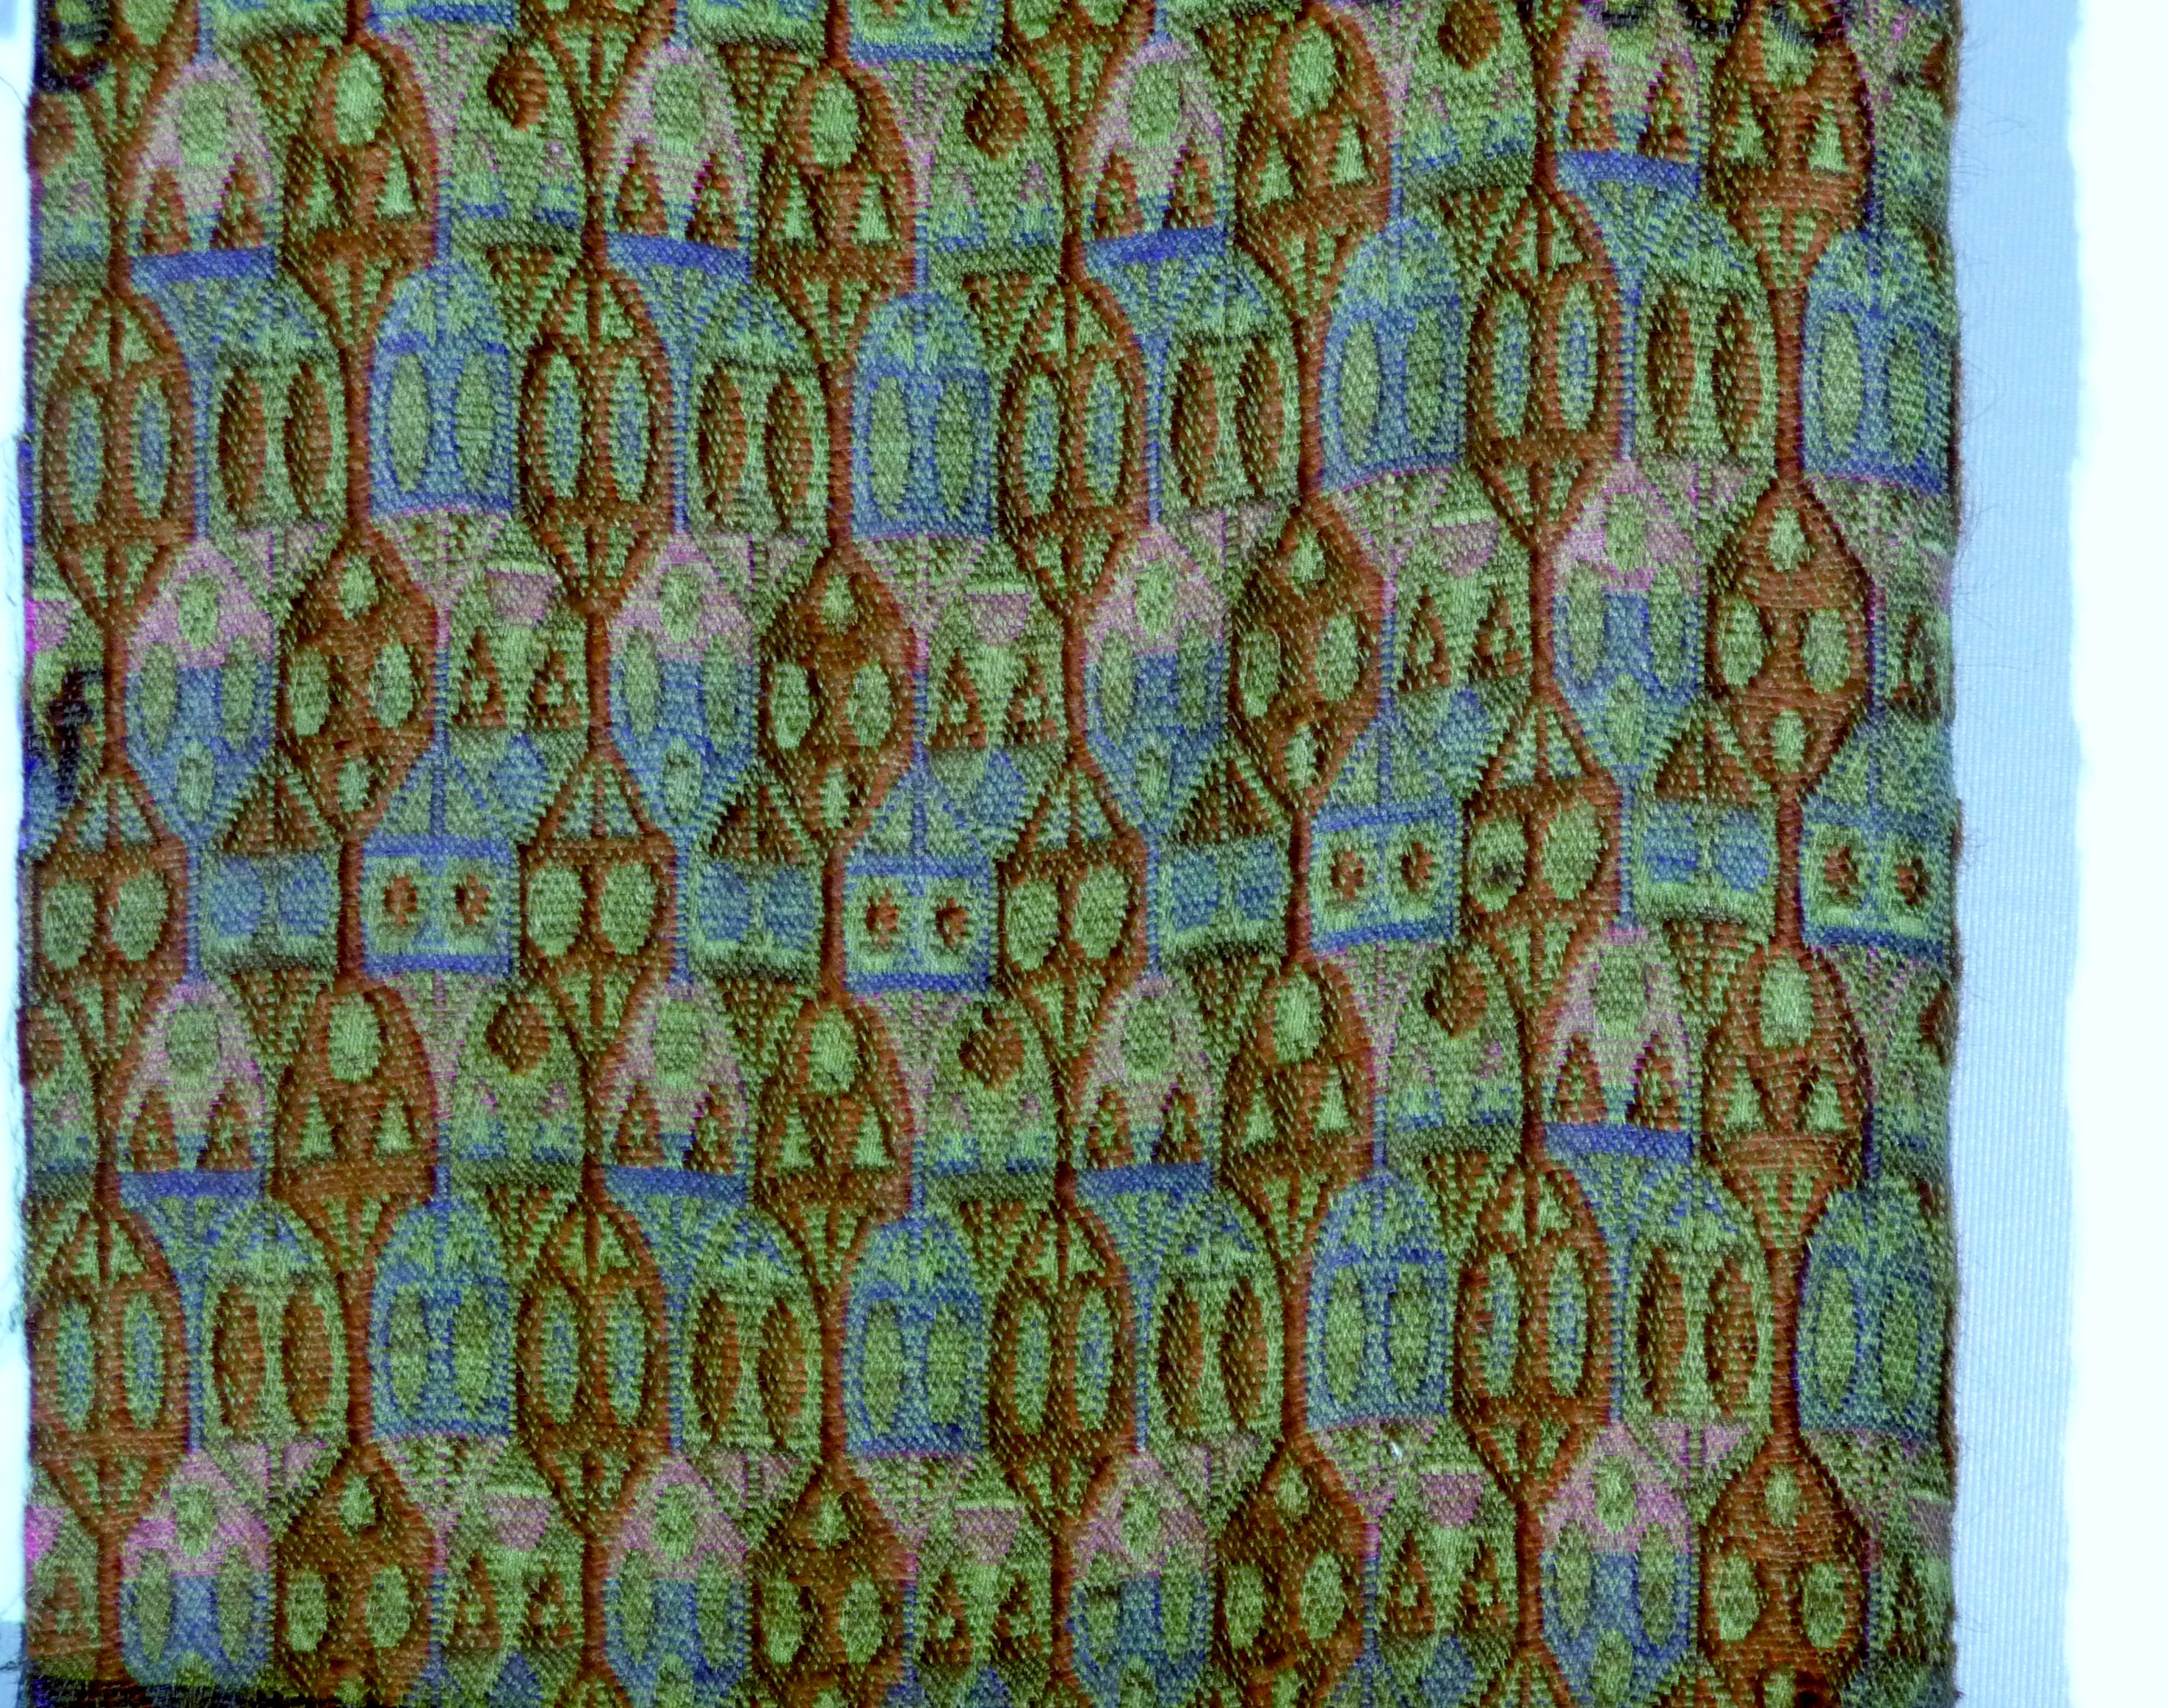 fabric design by Tibor Reich. Fabric was collected by Liz and Alun Evans of Retropattern